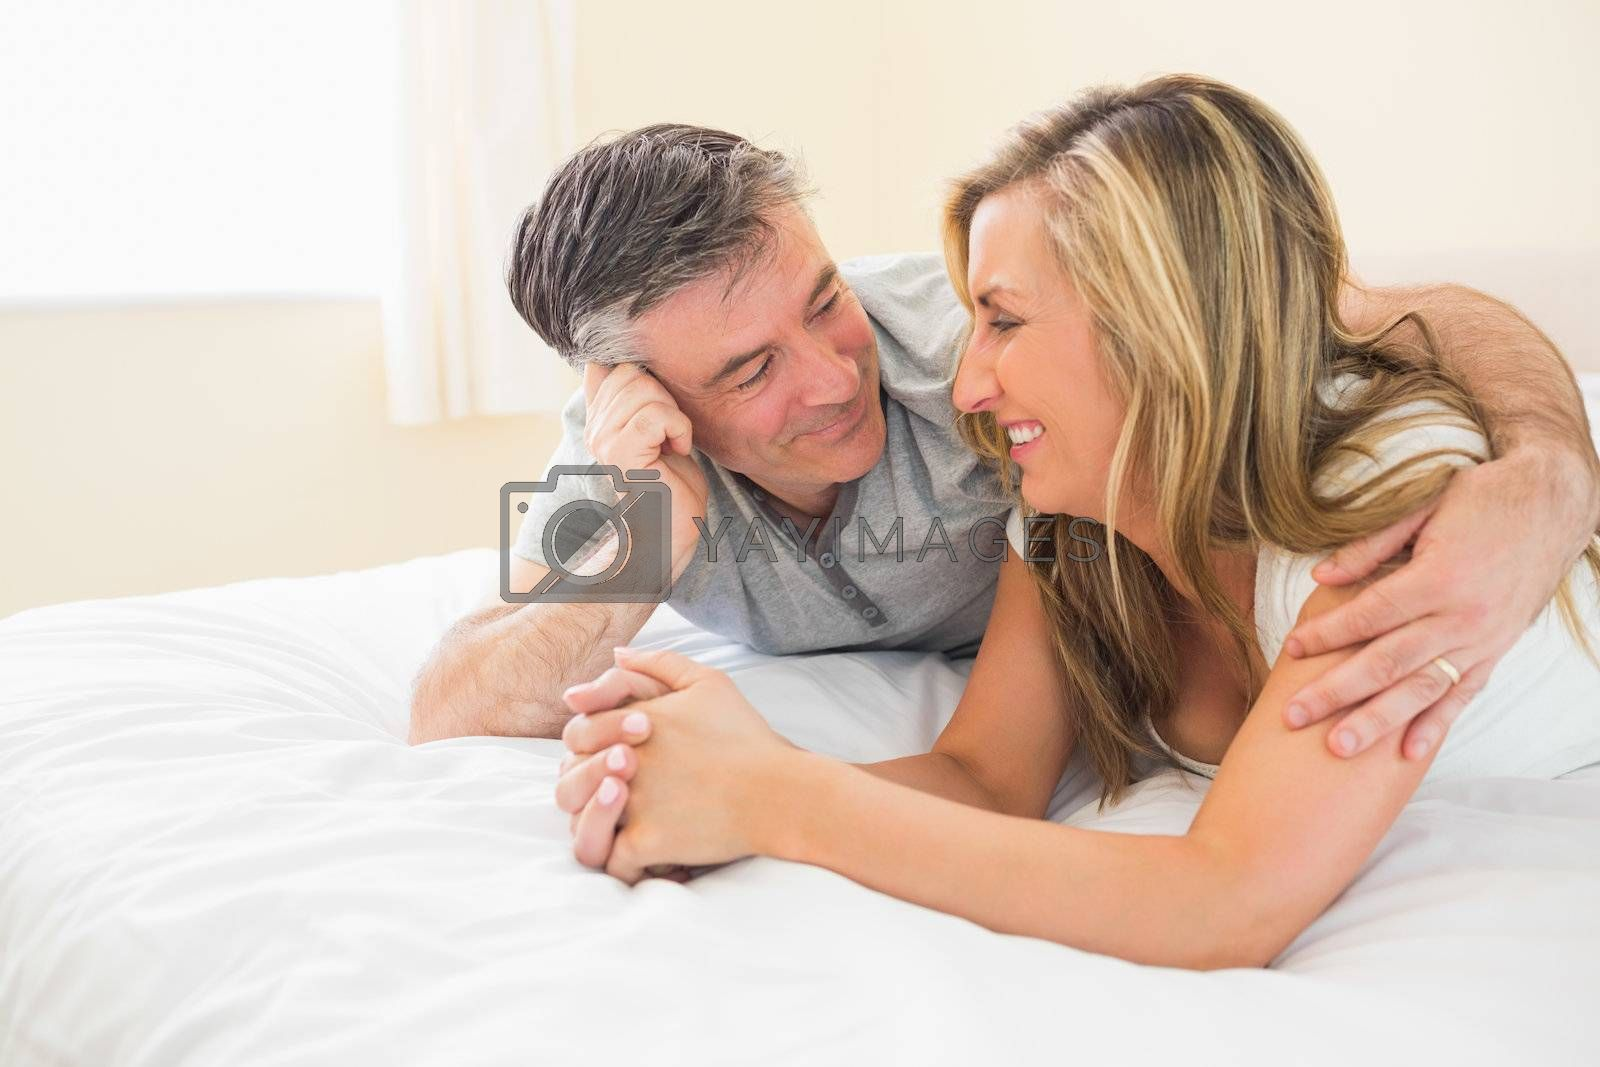 Happy couple lying on a bed and looking each other by Wavebreakmedia